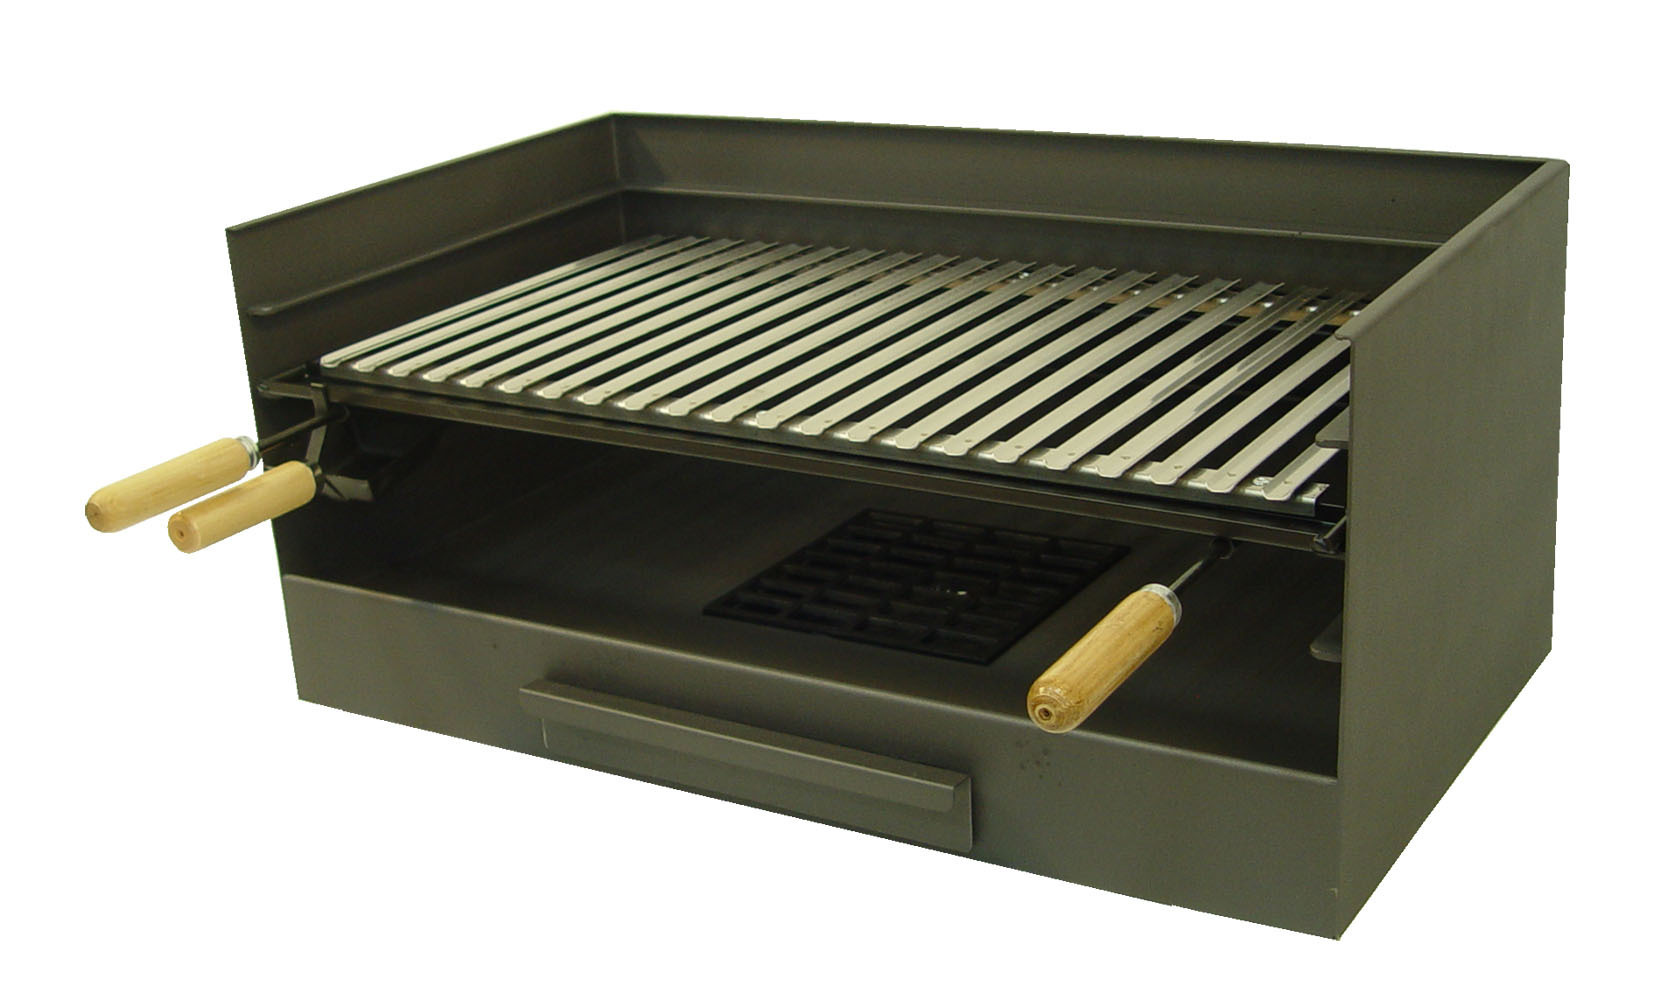 Cajon barbacoa con parrilla inox grande the barbecue store for Barbacoas argentinas precios